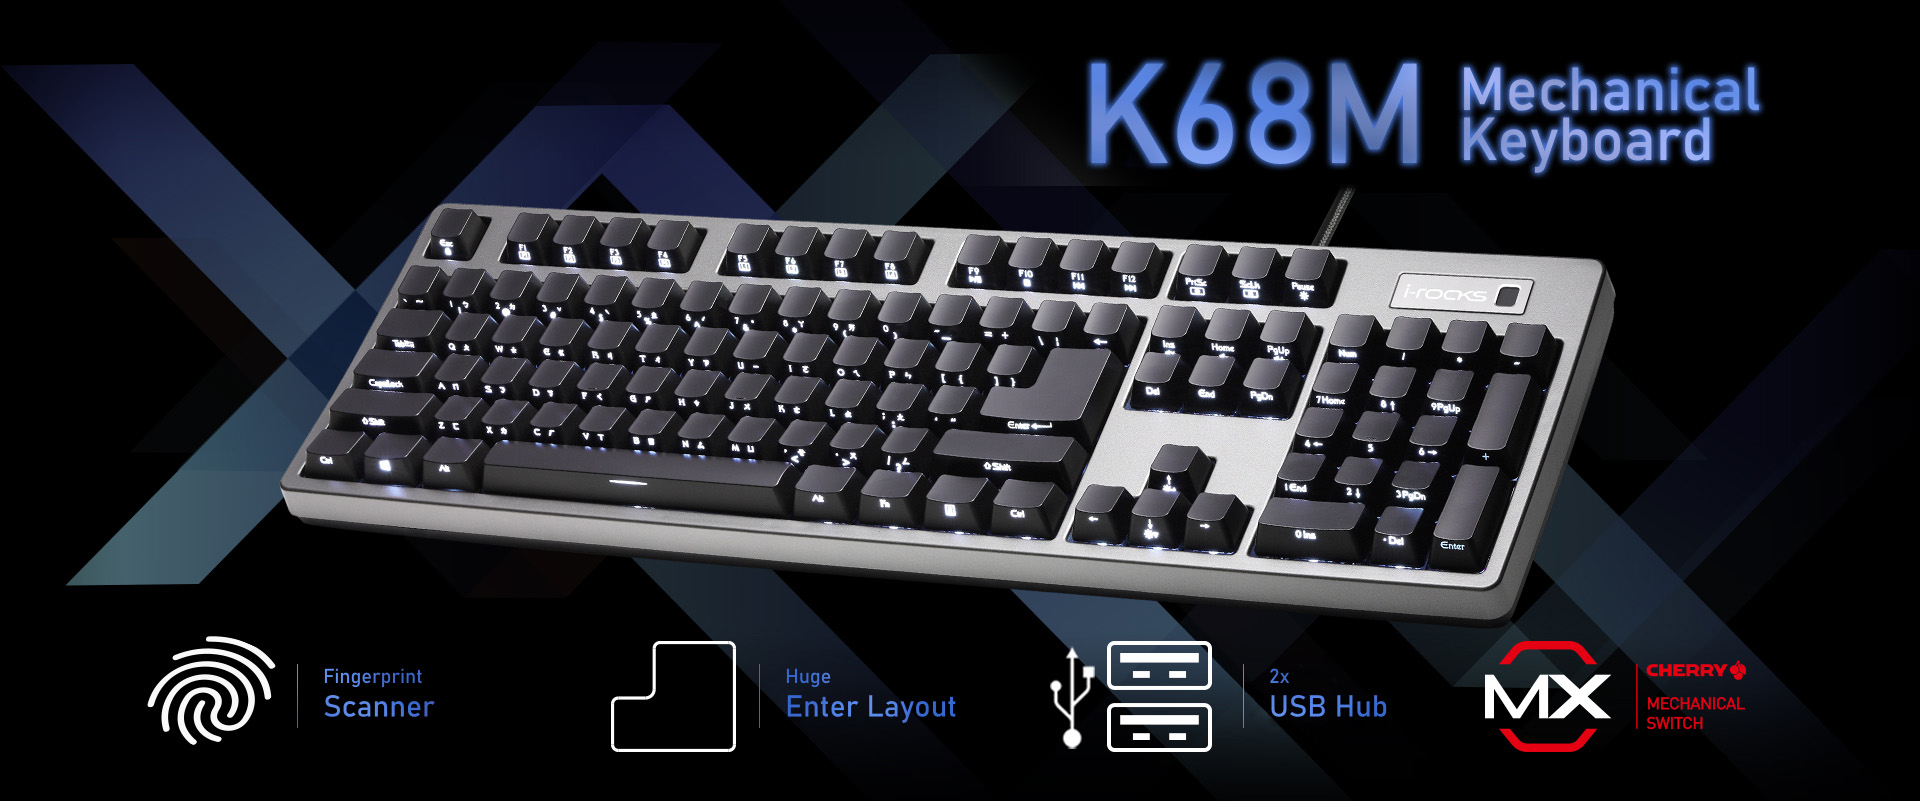 K68M Fingerprint Keyboard